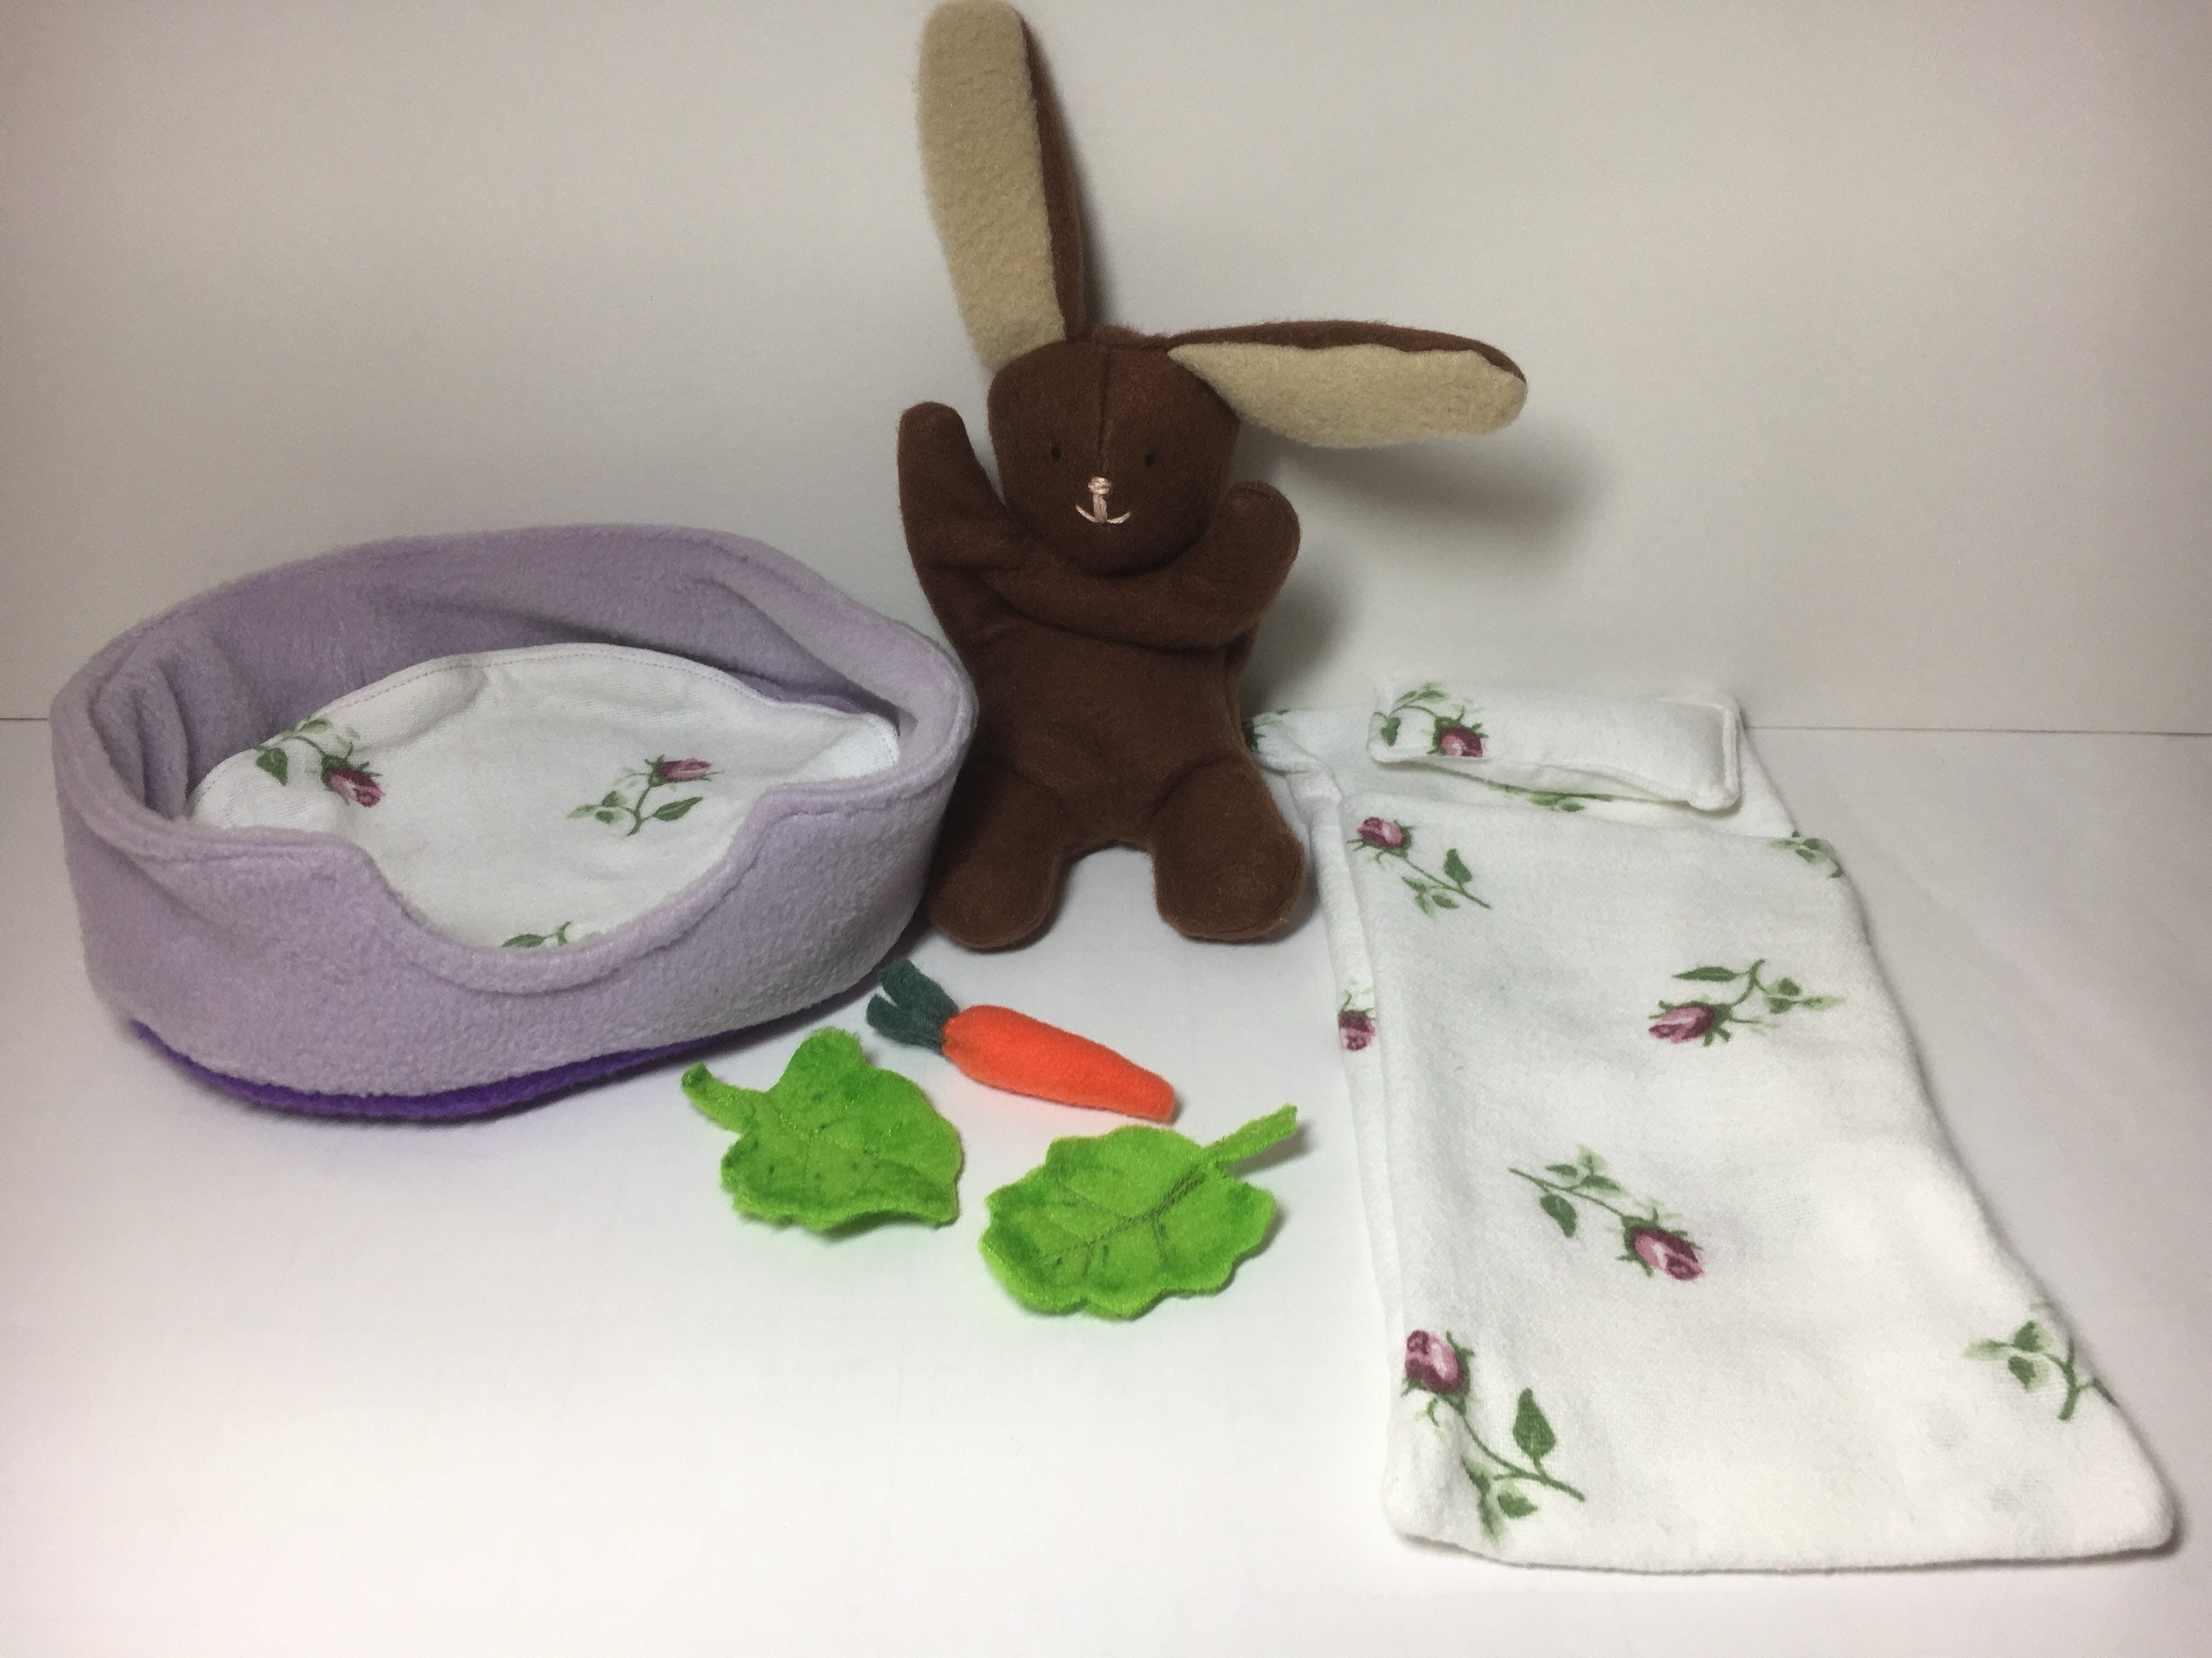 Bunny playset   play set   Rabbit sleeping bag   pillowbed b088e8a79